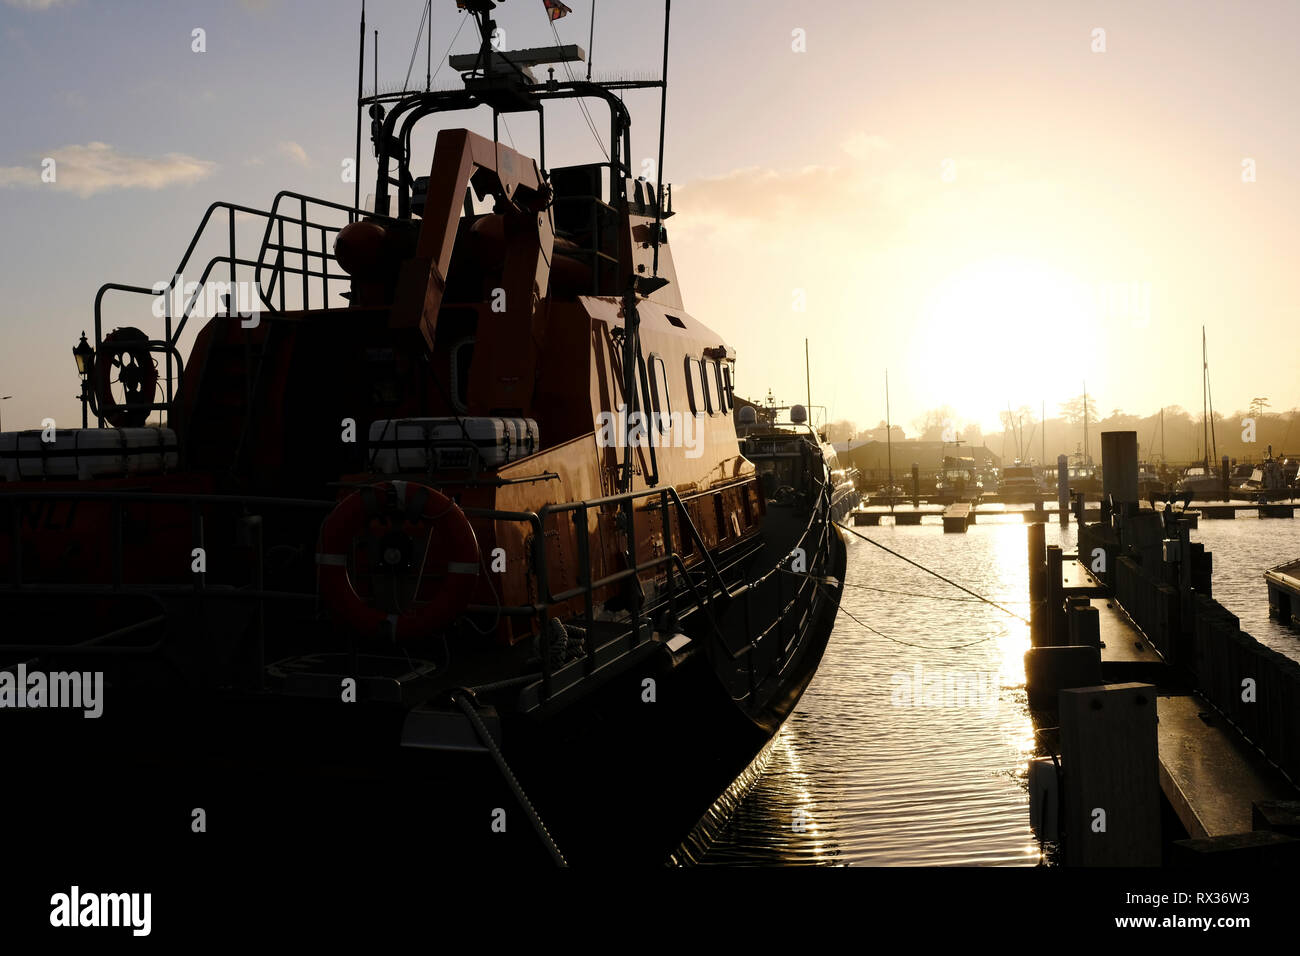 The Severn class Yarmouth RNLI Lifeboat moored in Yarmouth Marina on the Isle of Wight, UK. Stock Photo